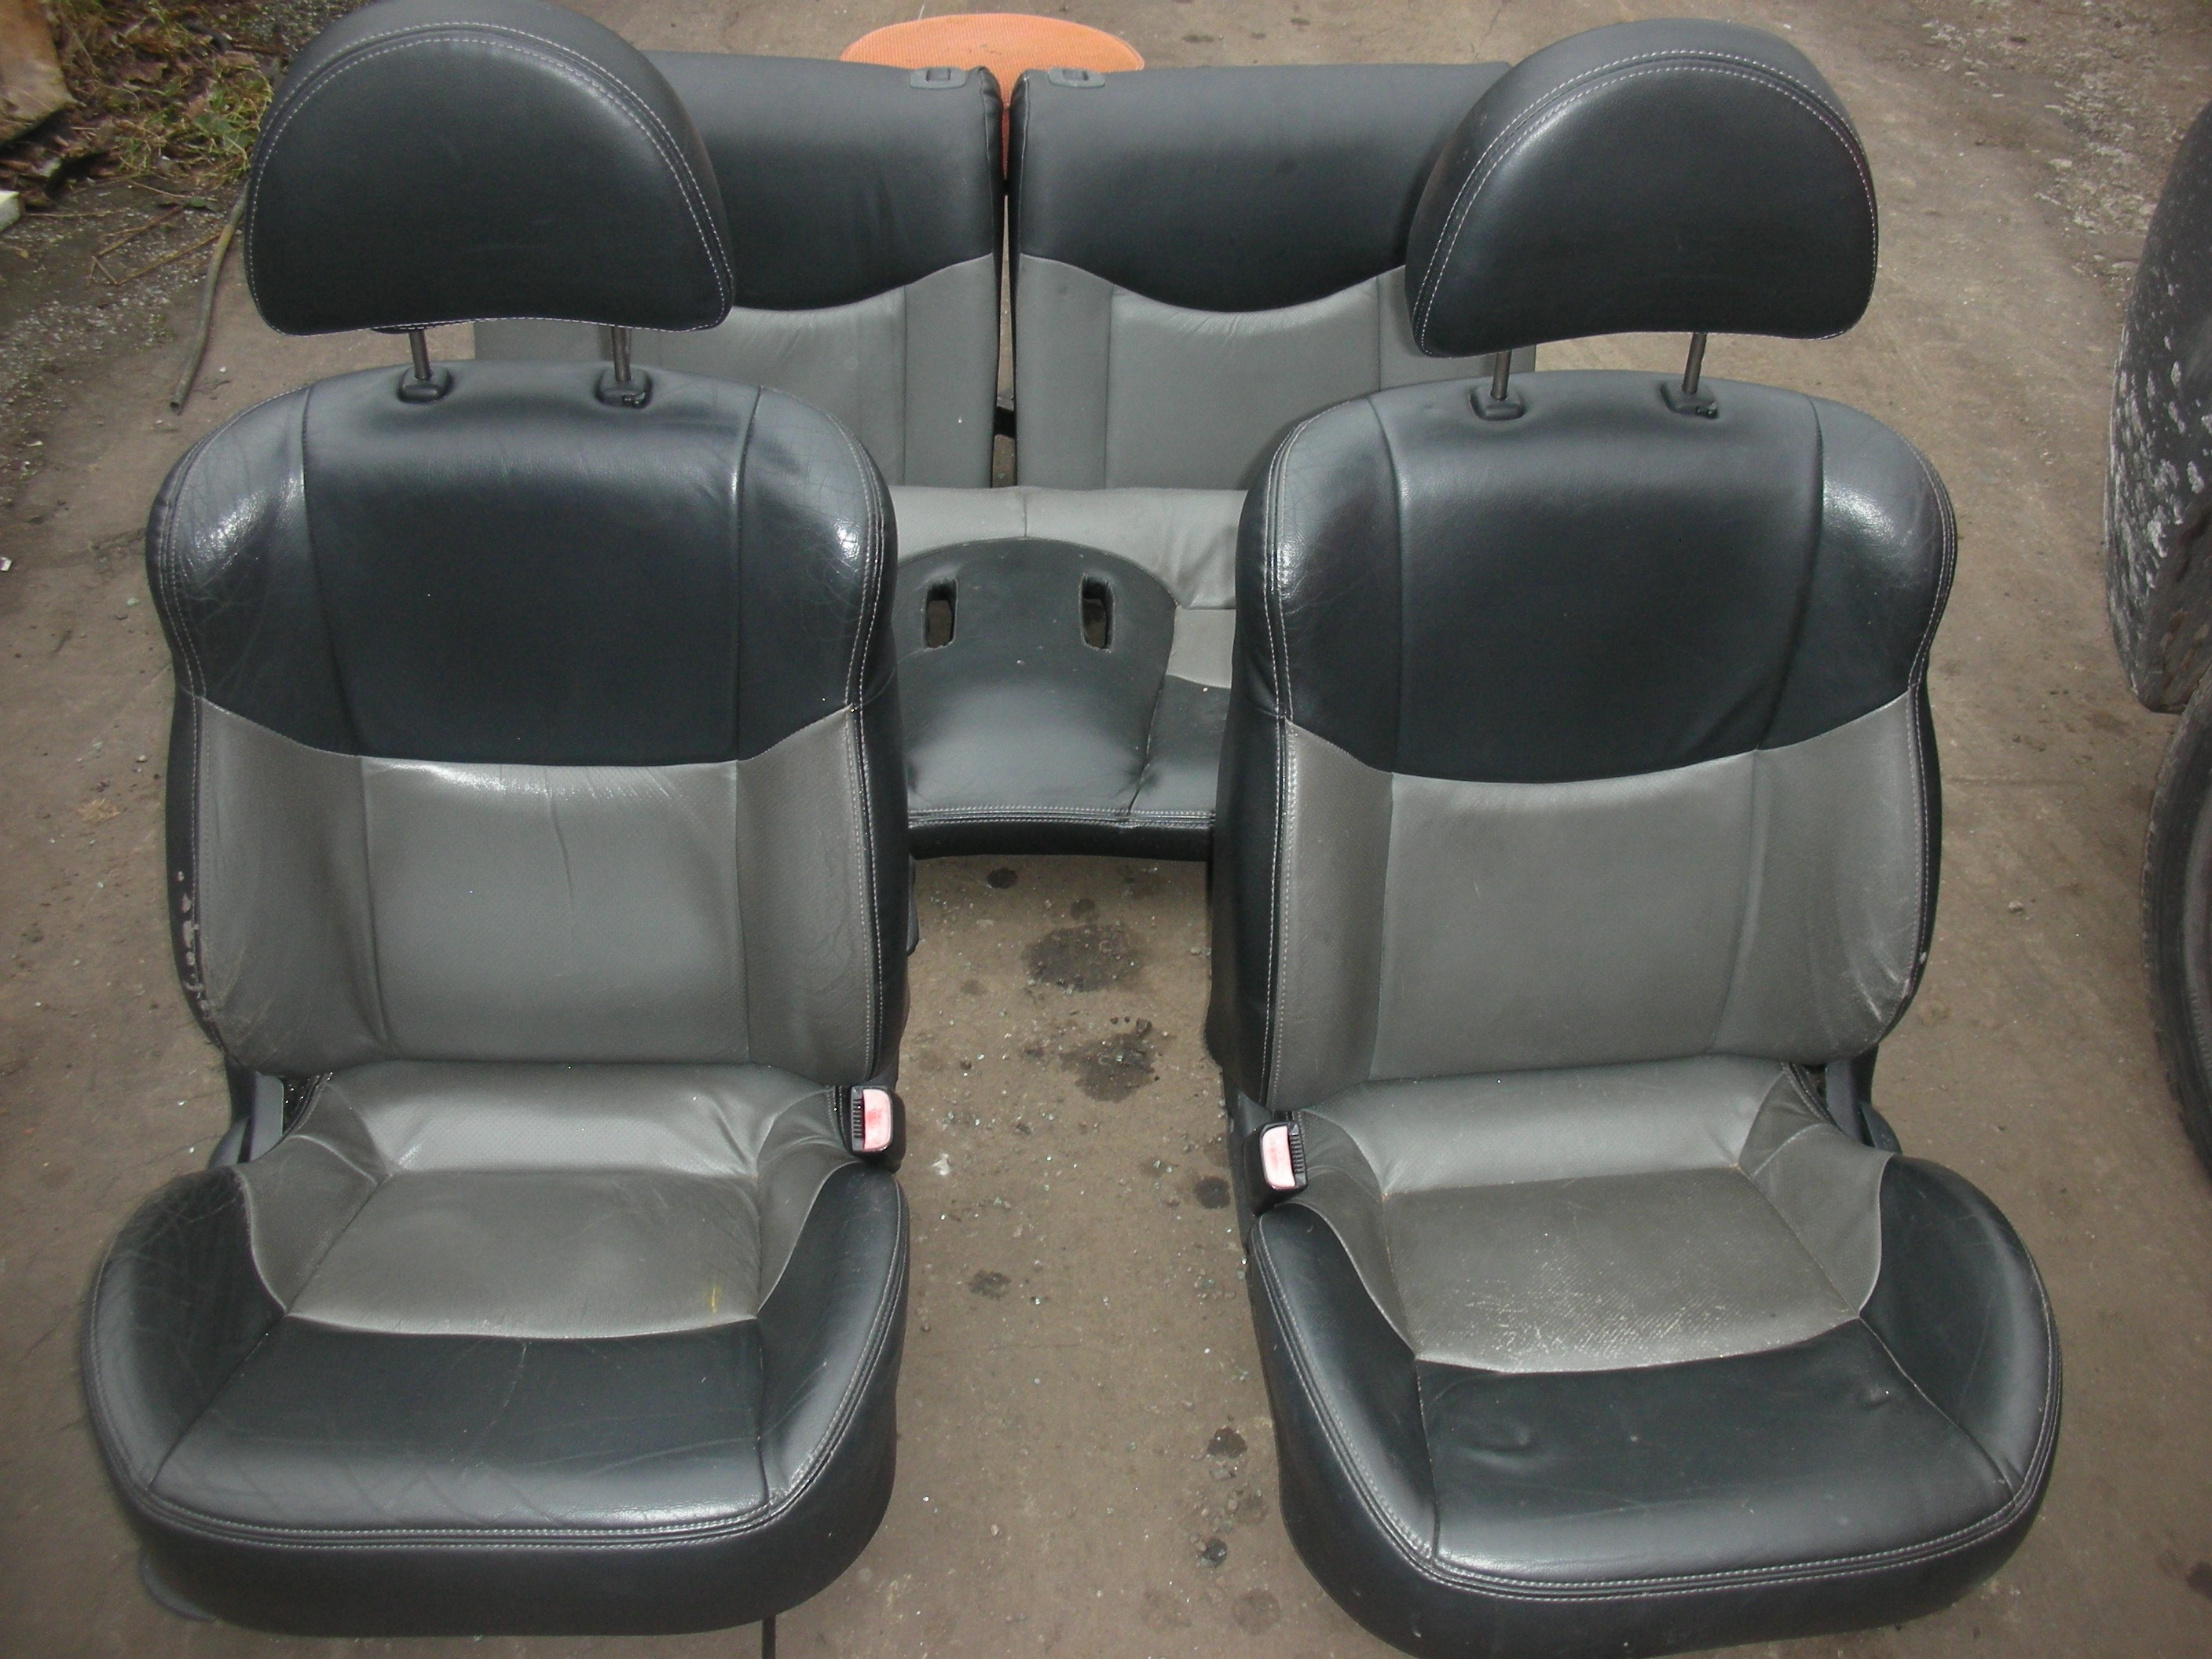 HYUNDAI COUPE 3 DOOR LEATHER SEATS INTERIOR 1998-2002.